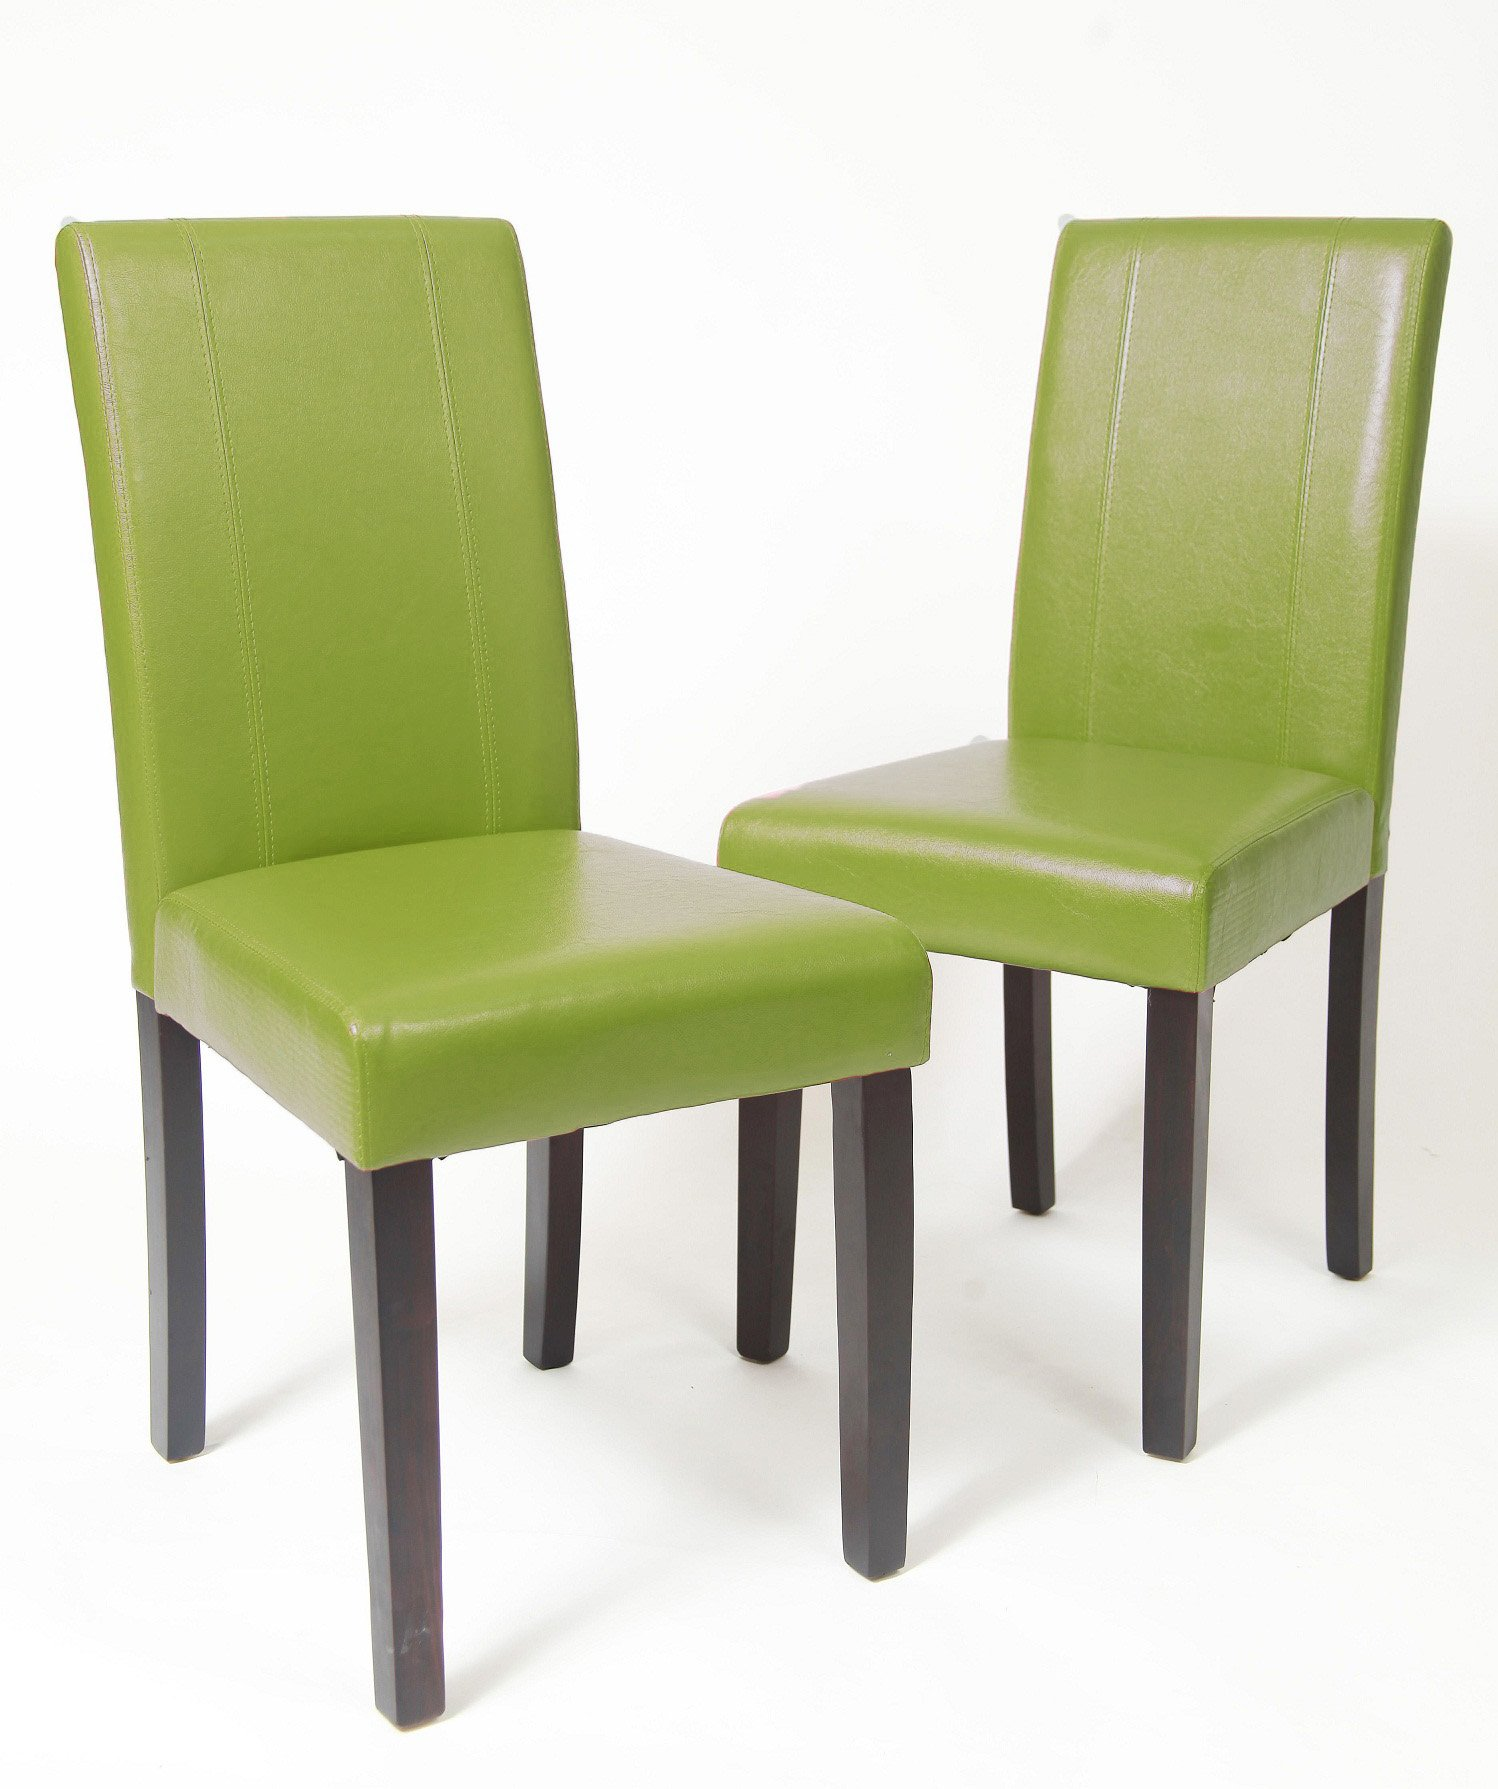 Roundhill Furniture Urban Style Solid Wood Leatherette Padded Parson Chair, Green, Set of 2